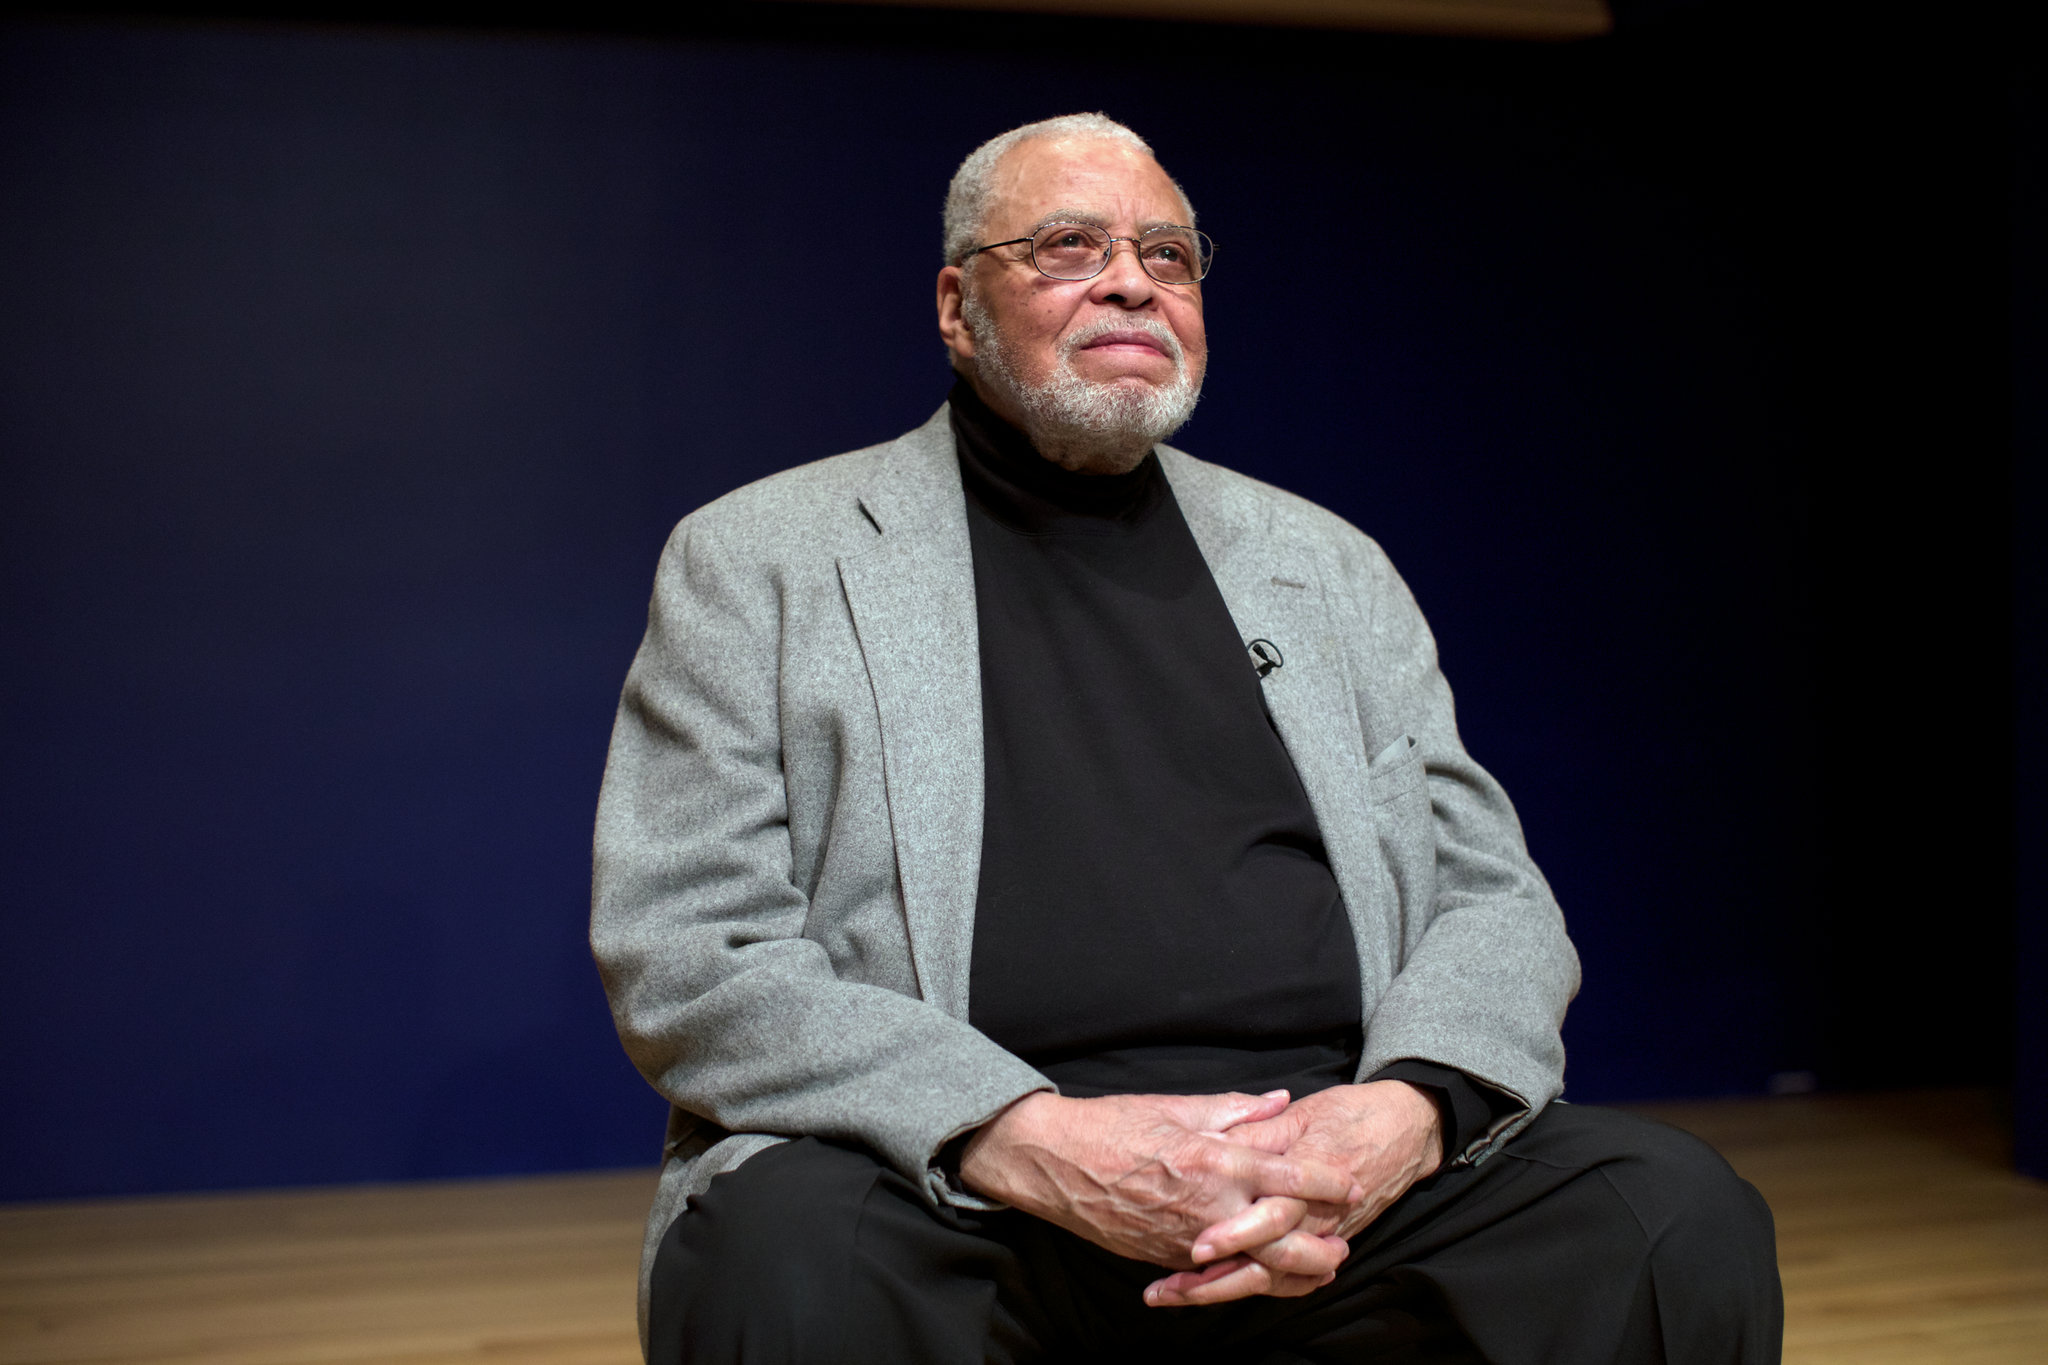 James Earl Jones Performs a Monologue From 'You Can't Take It With You'